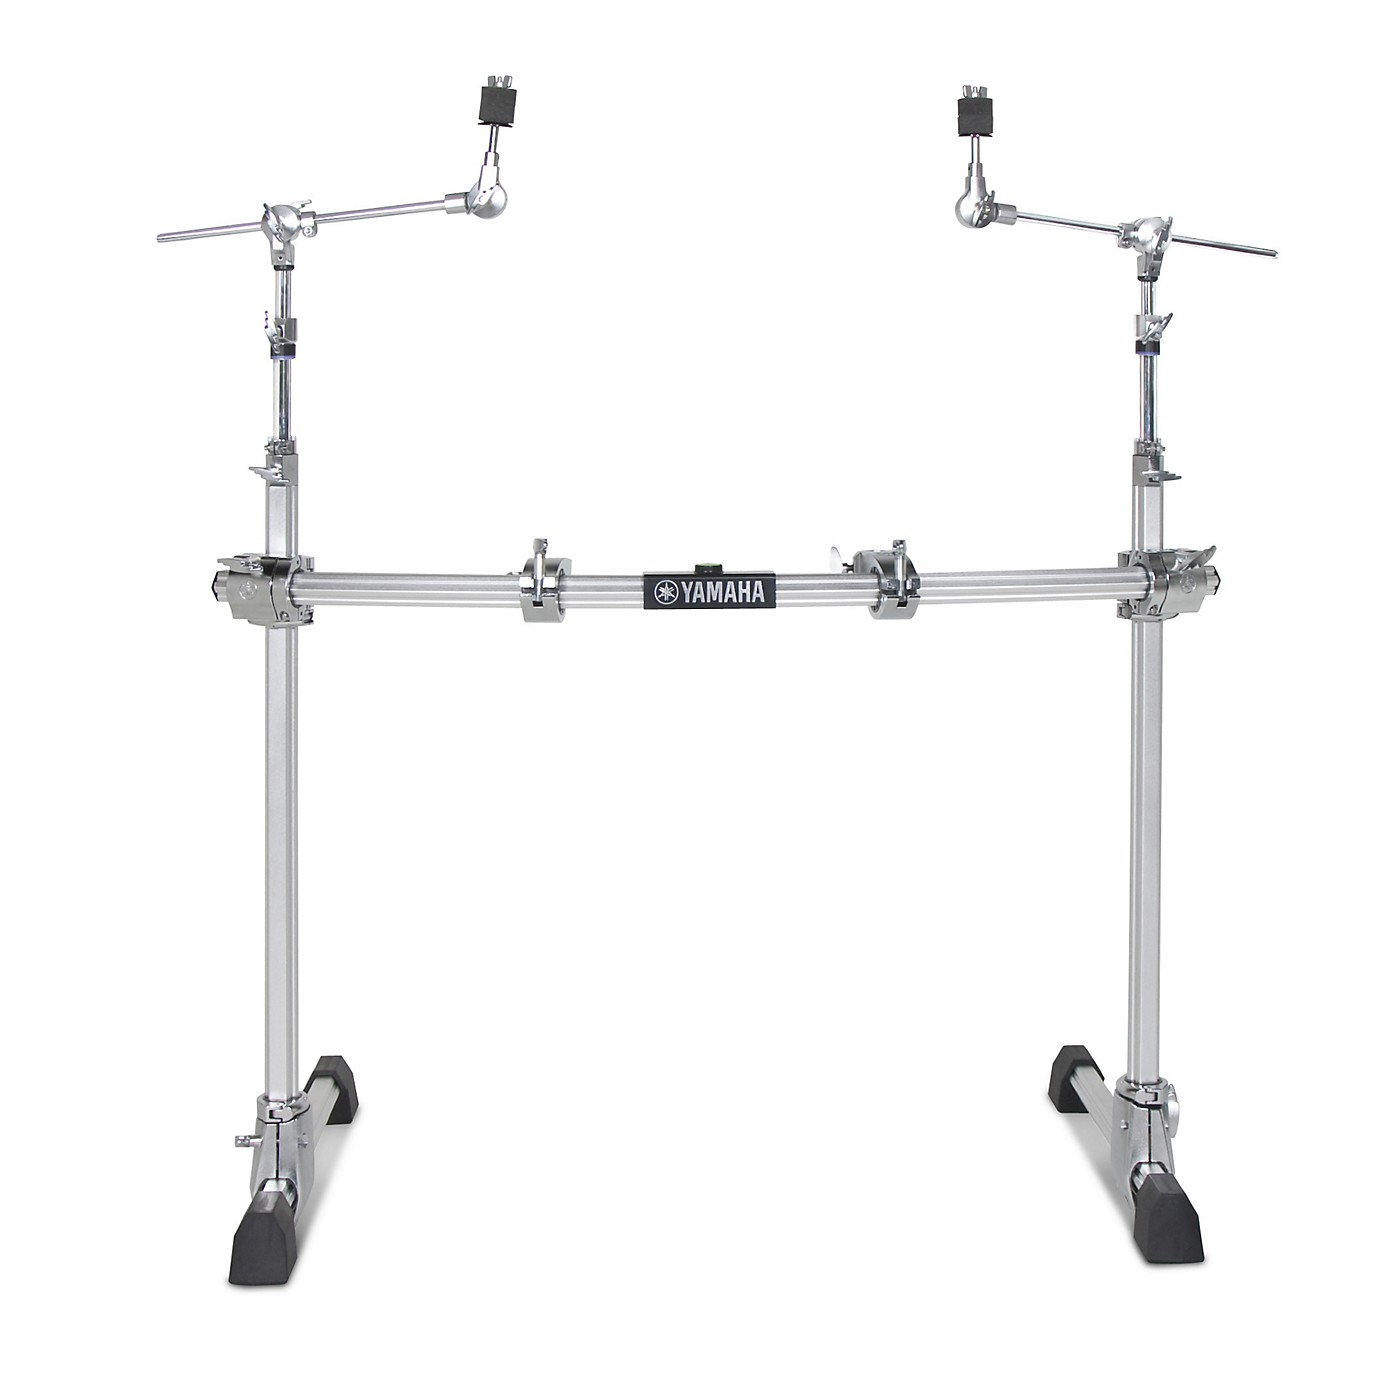 Yamaha 2-Leg Hexrack with Hexagonal Curved Pipe and Cymbal Boom Arms thumbnail